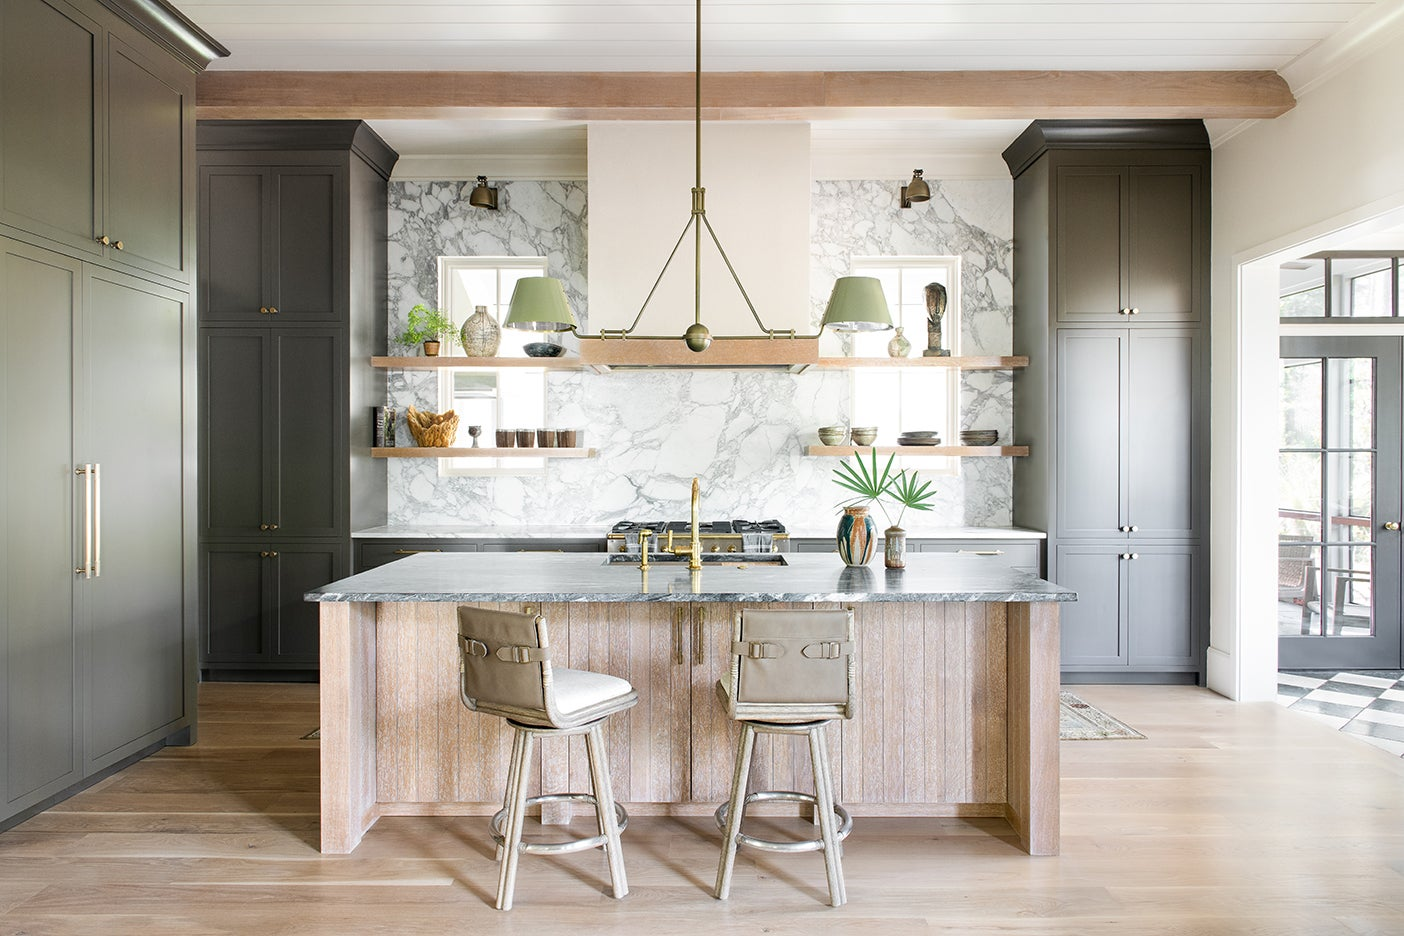 large wood and green kitchen